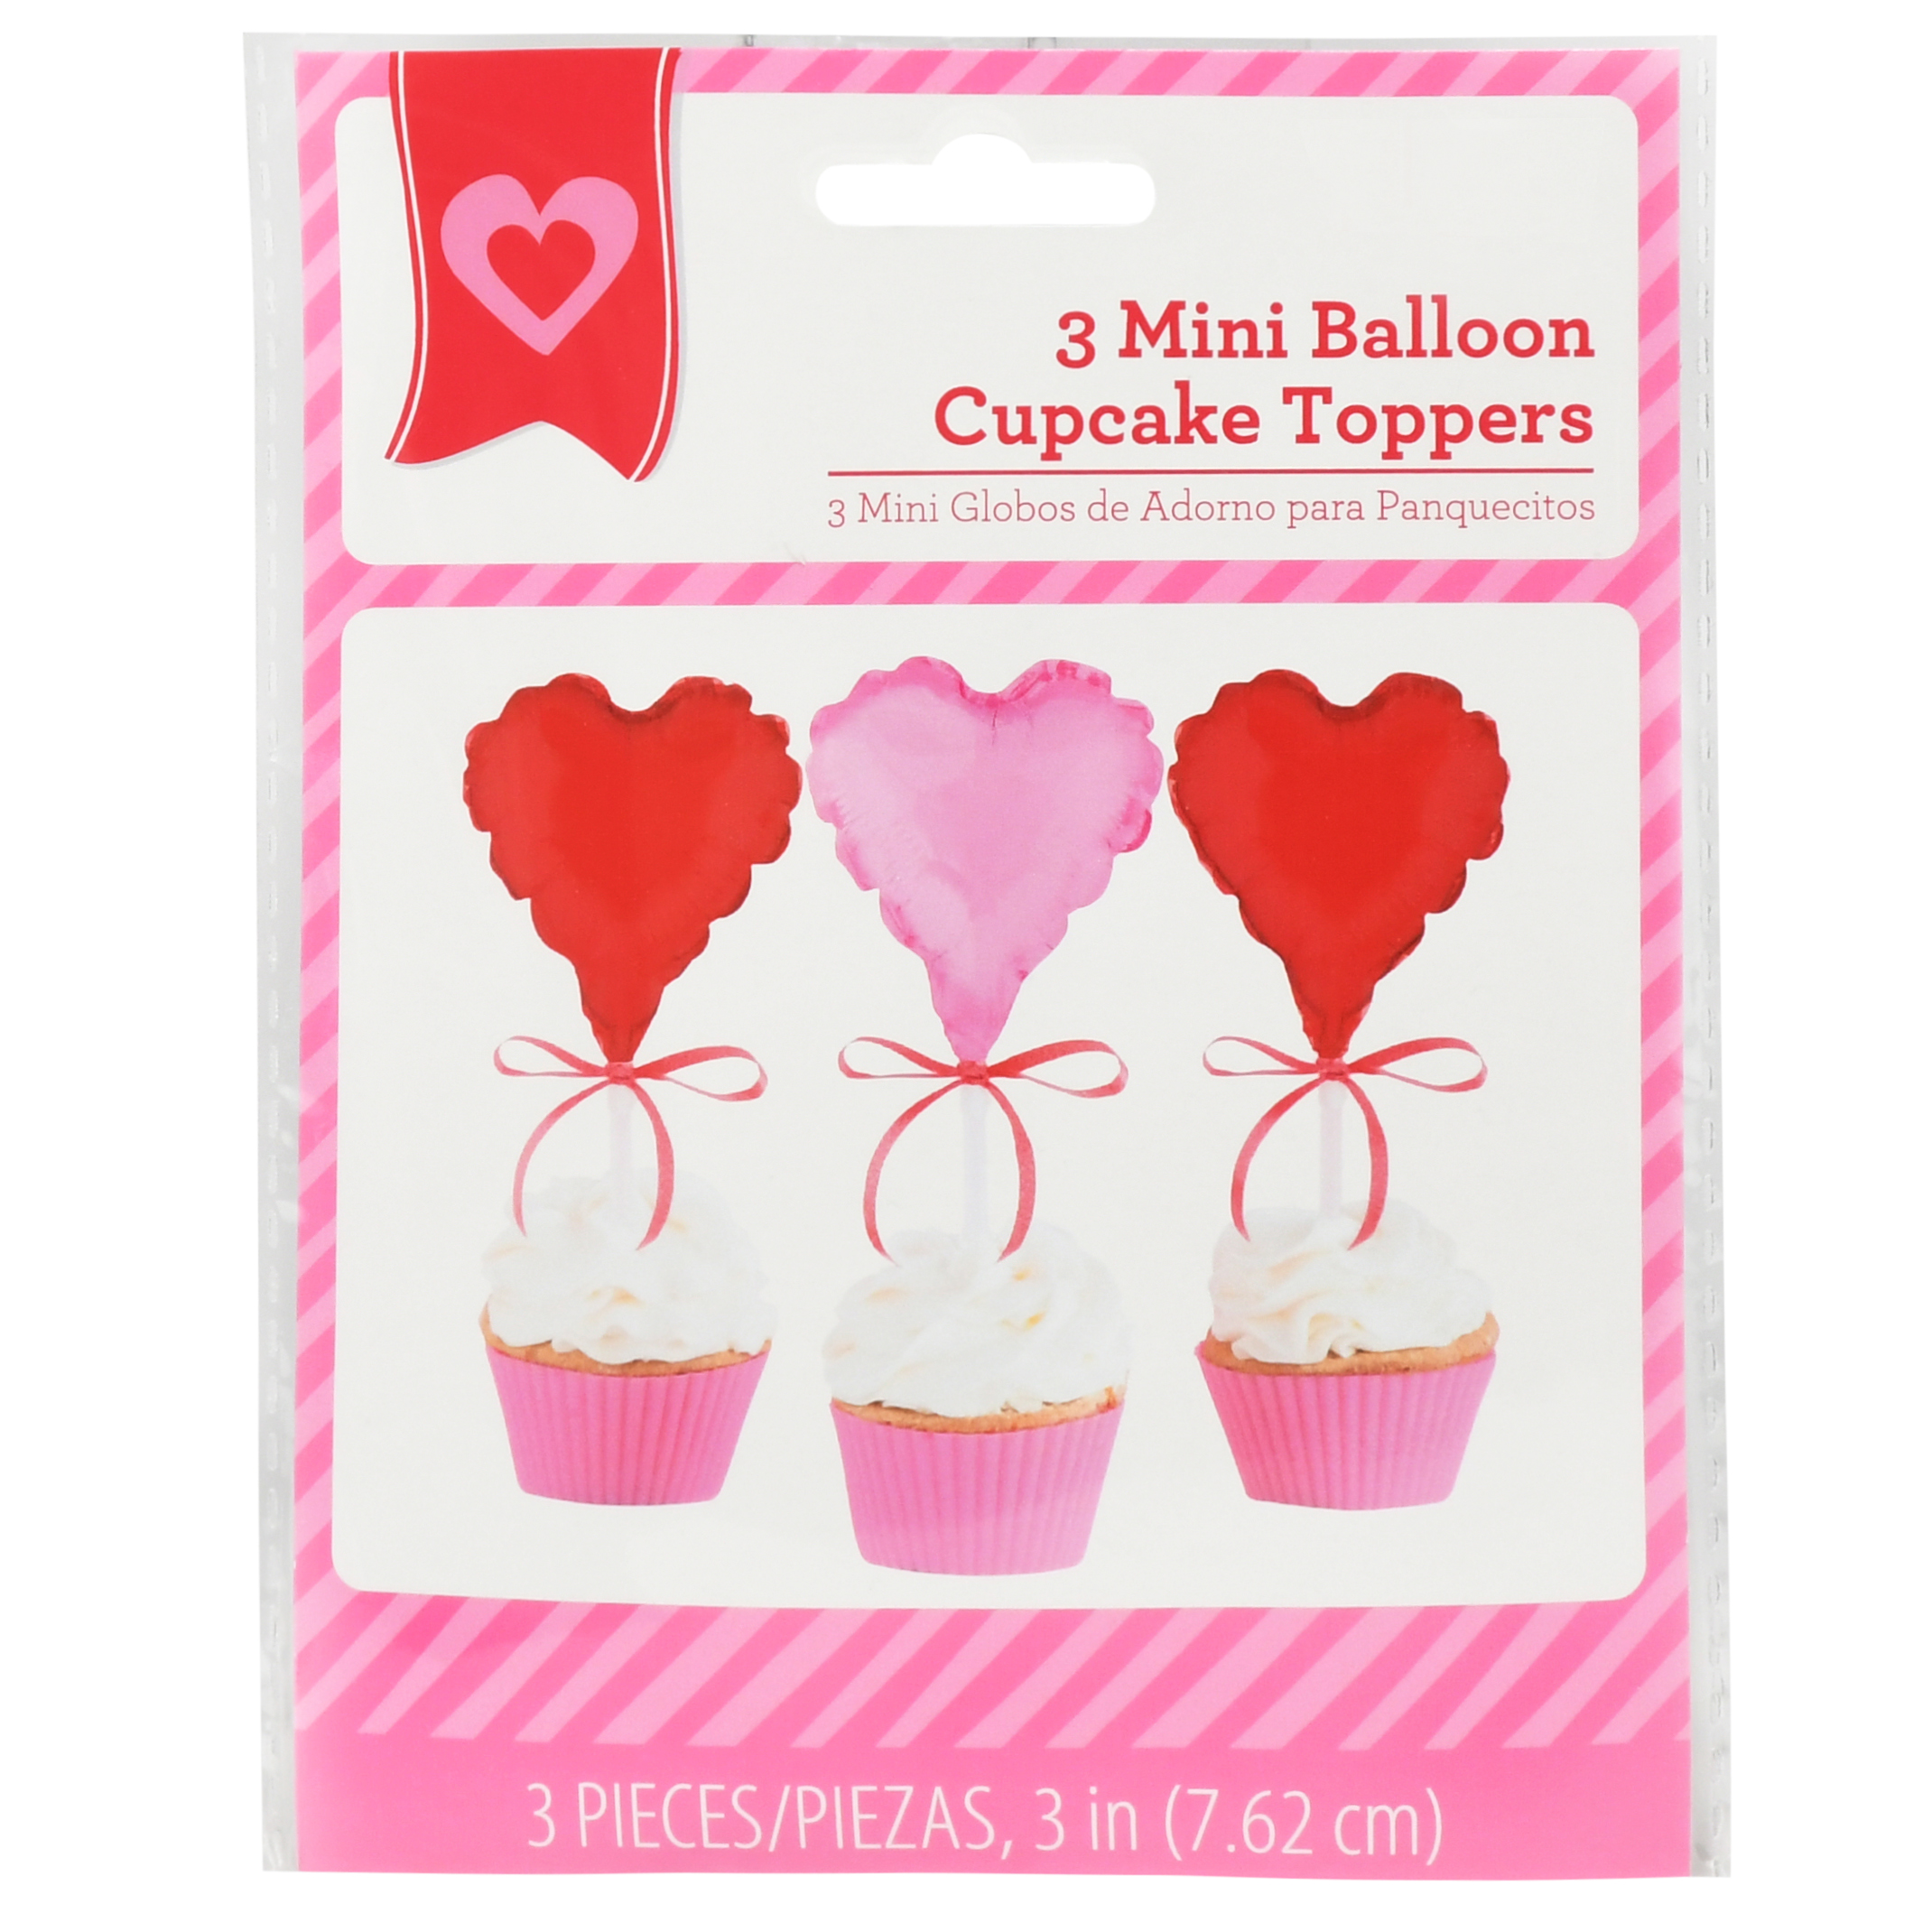 Pink and Red Heart Balloon Valentine's Day Cupcake Toppers, 3 in, 3ct